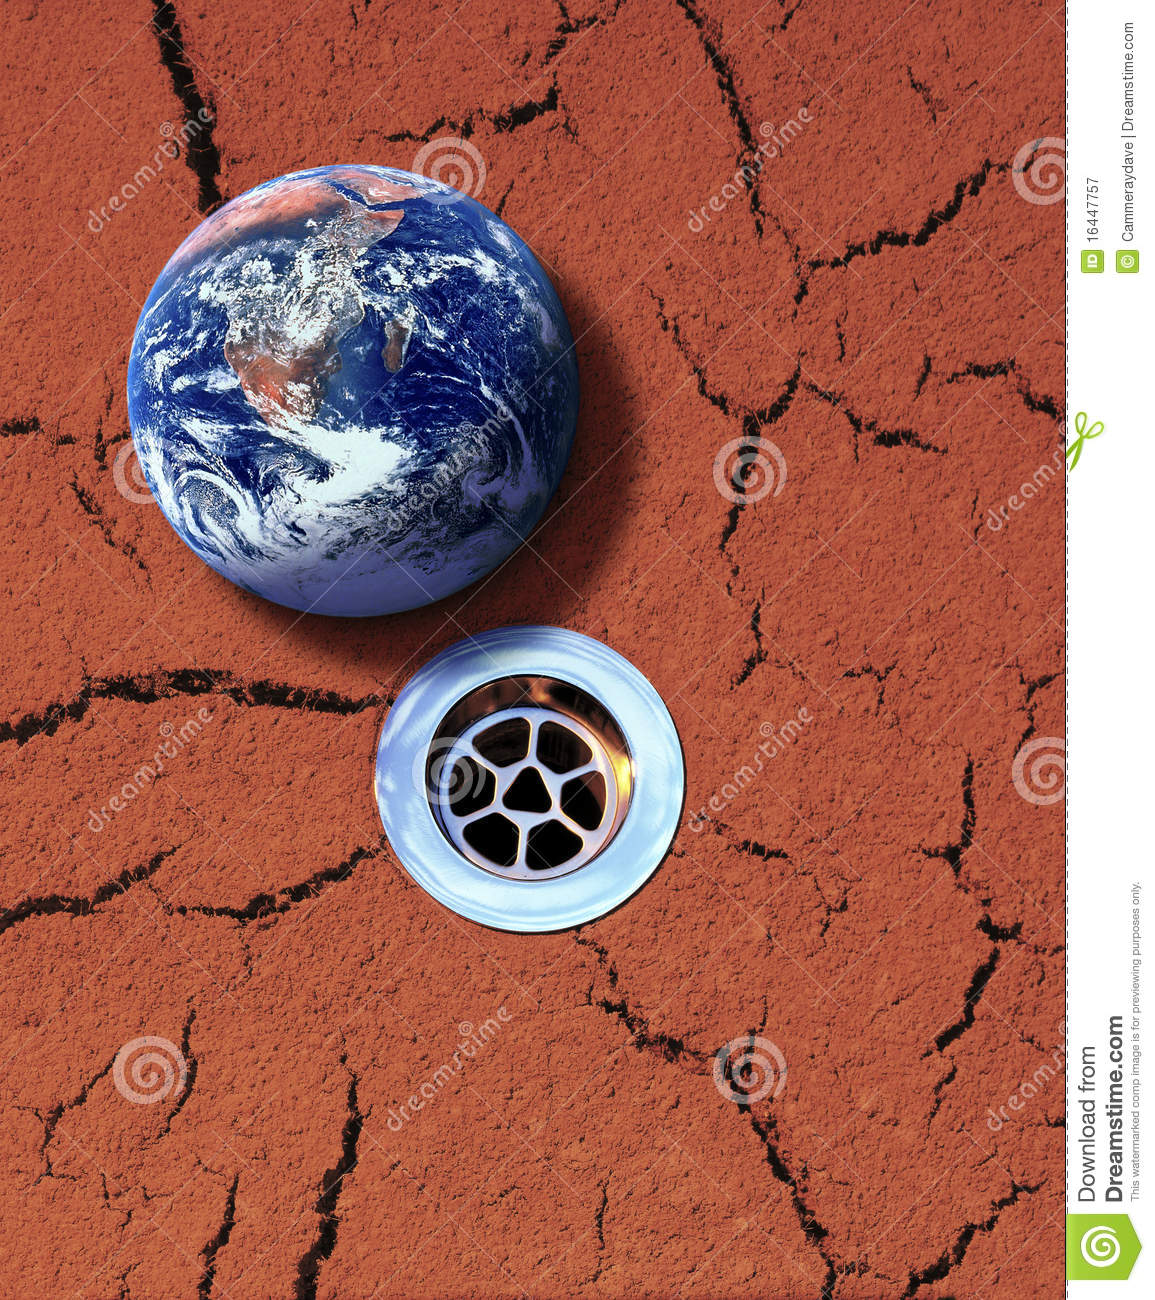 Drought And Water Conflict